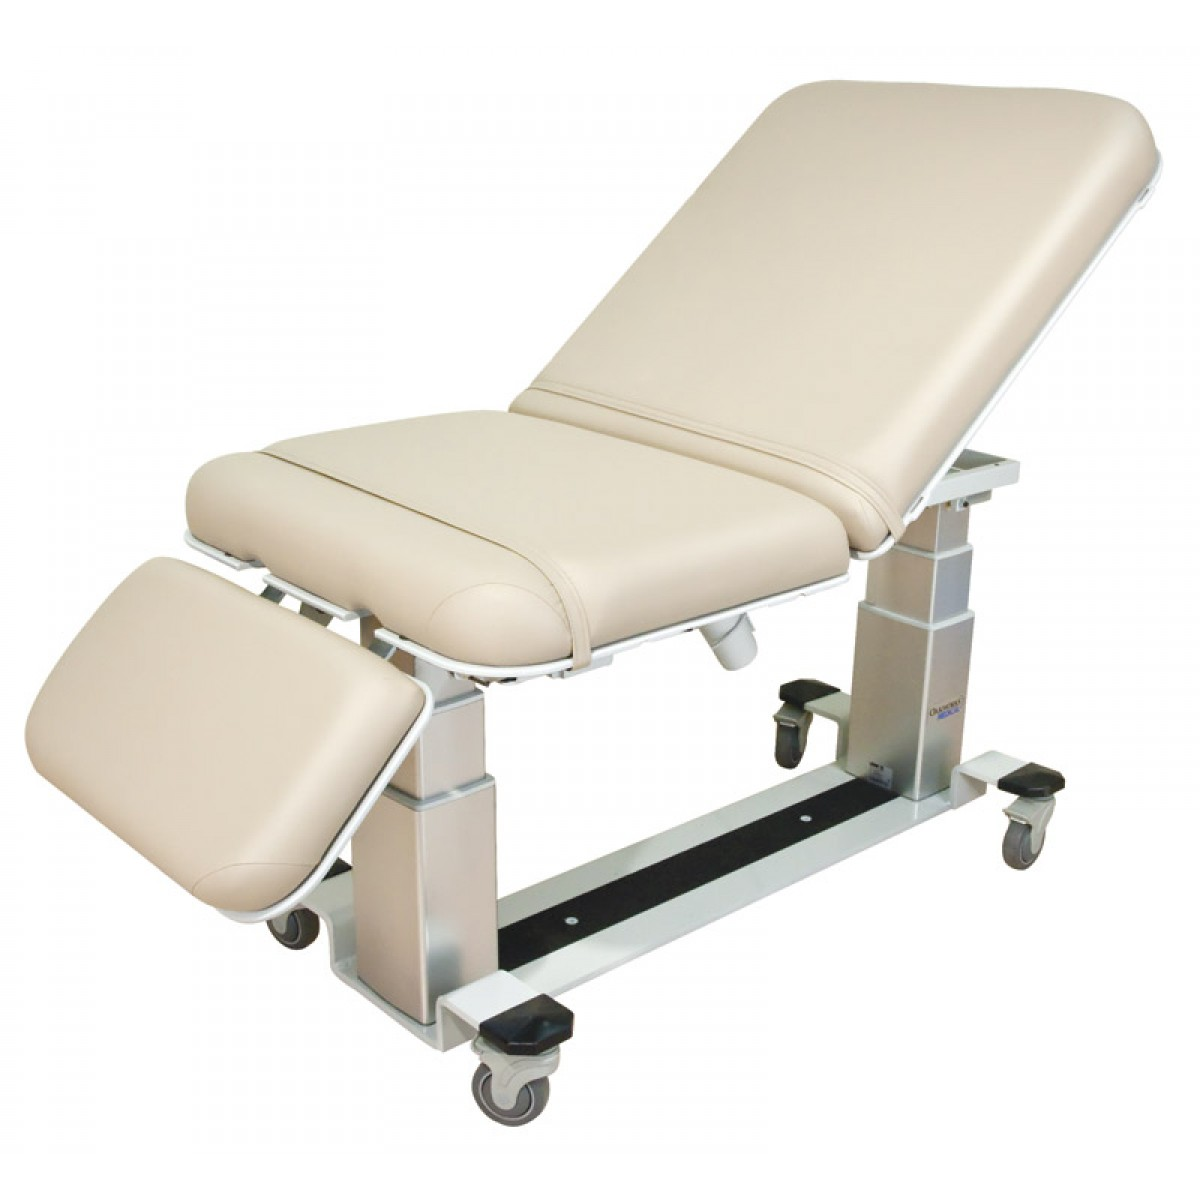 oakworks three section ultrasound table